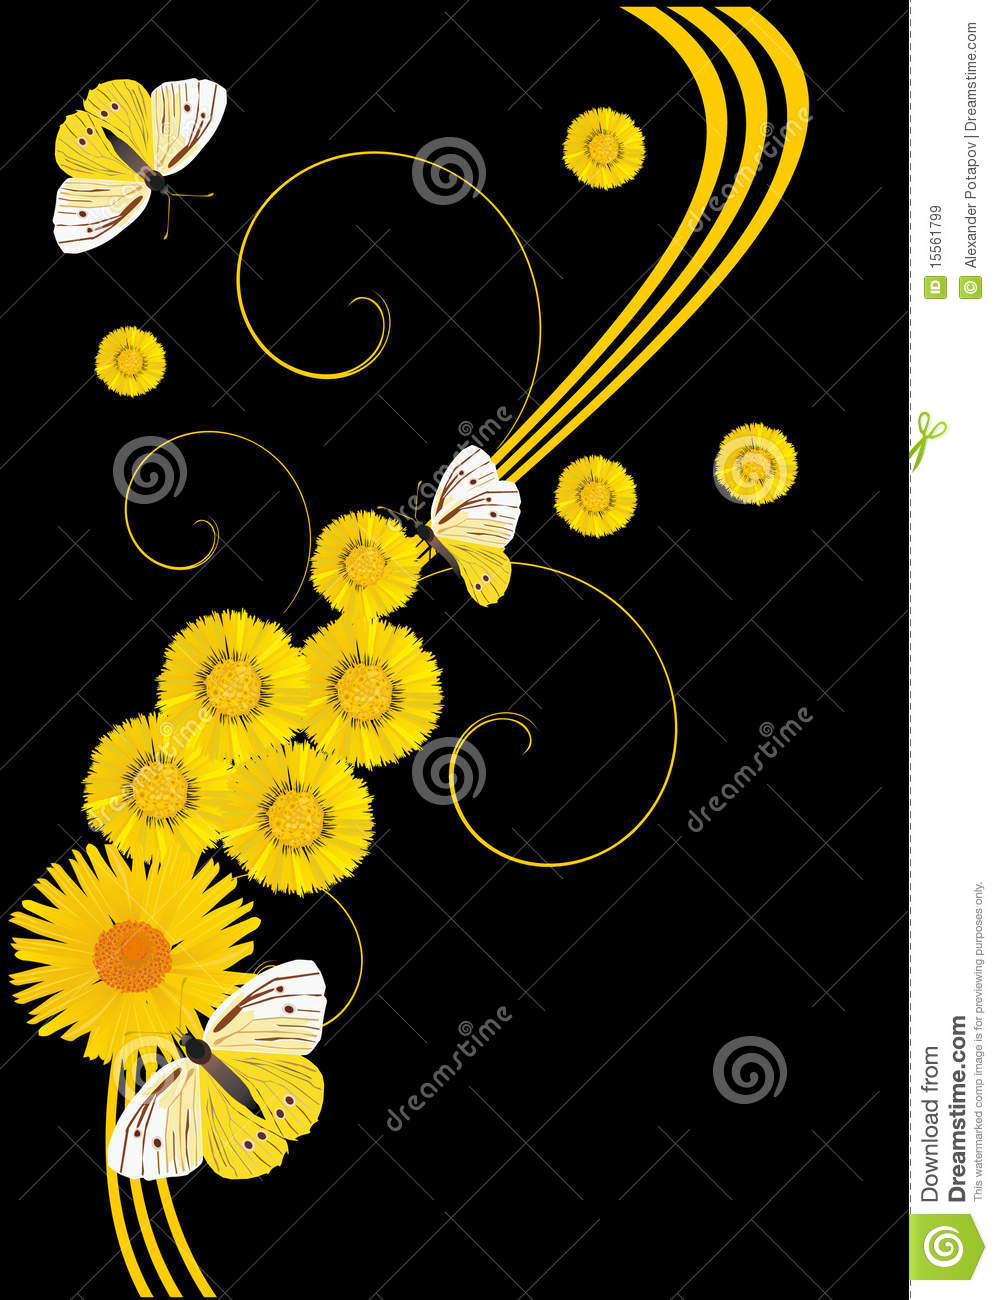 Yellow Flowers And Butterflies On Black Royalty Free Stock ... Yellow Black Flowers Wallpaper